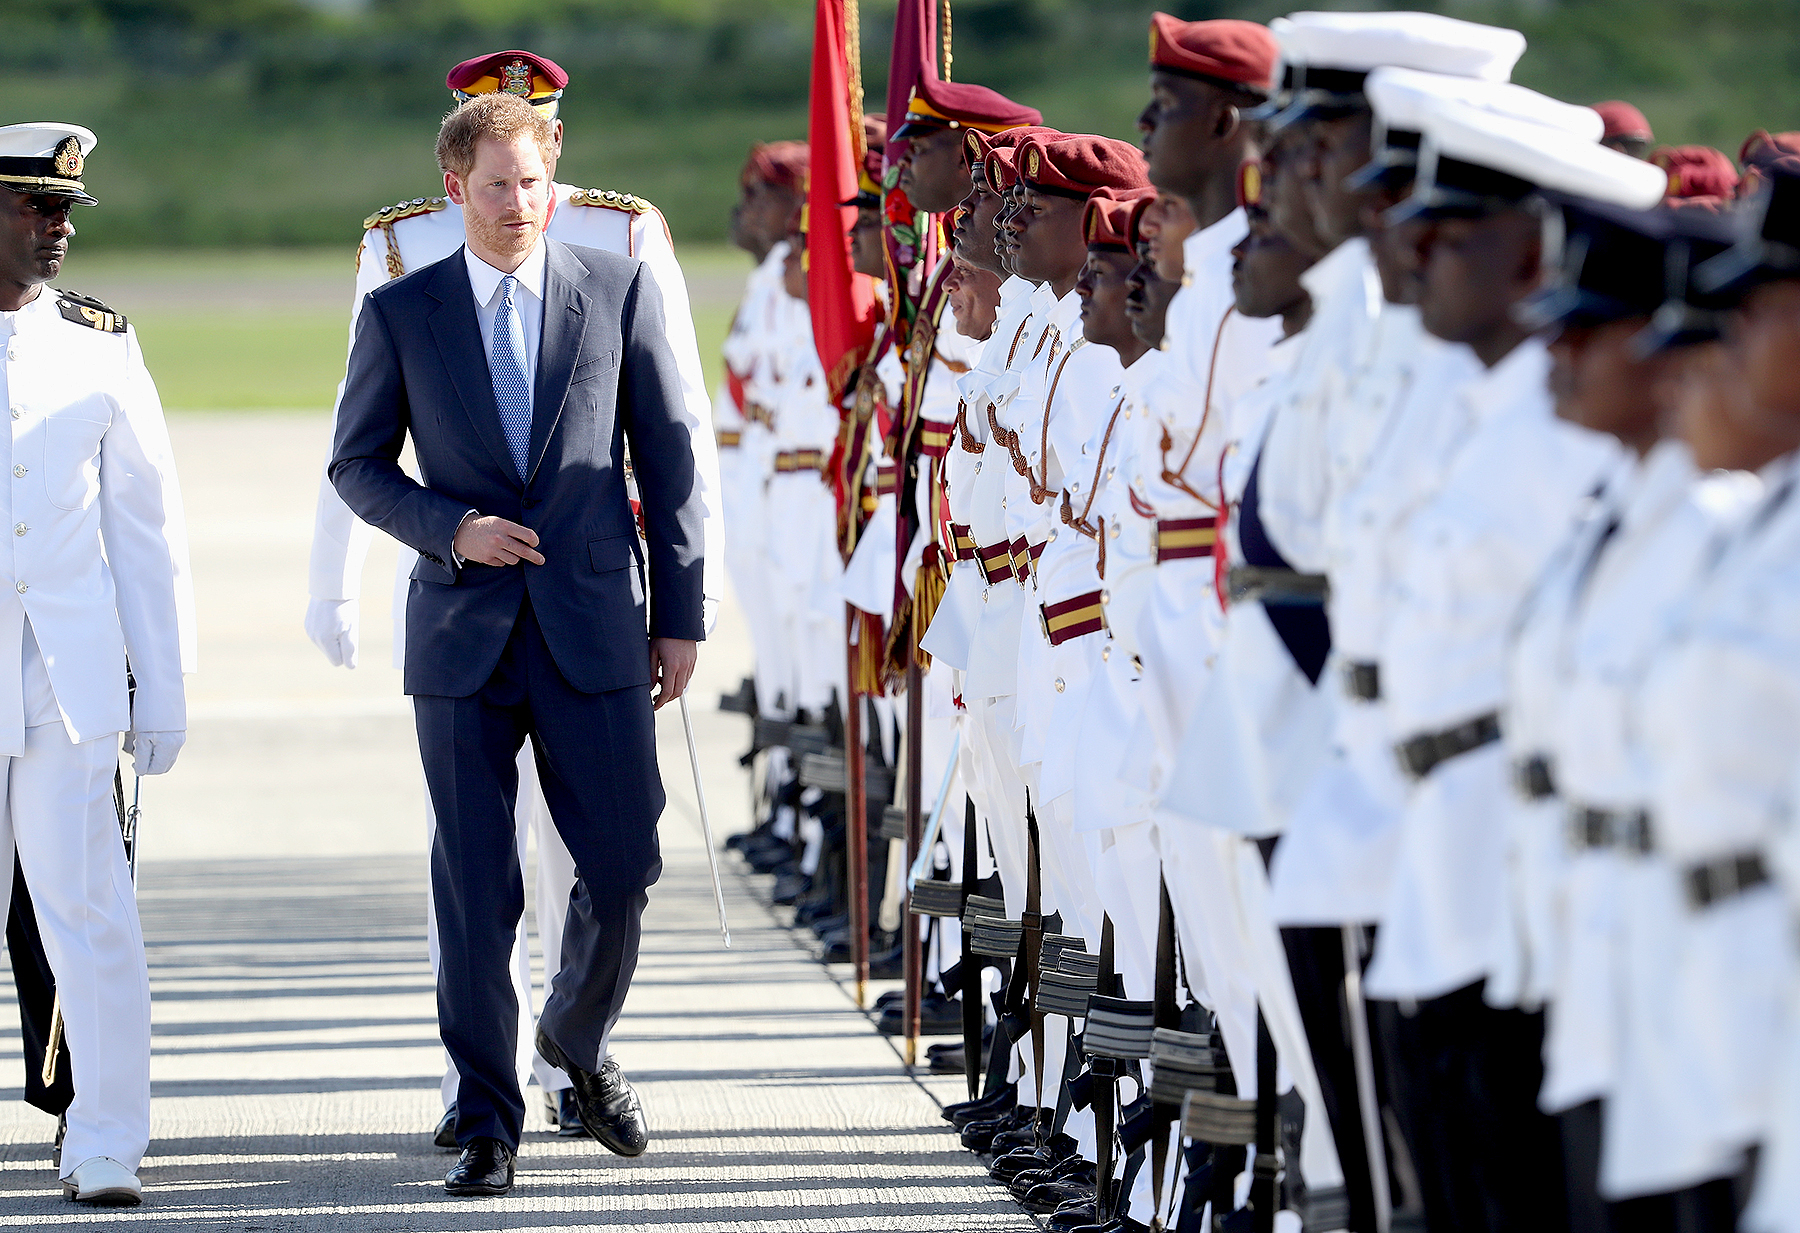 Prince Harry arrives at V.C. Bird International Airport on the first day of an official visit to the Caribbean on Nov. 20, 2016, in Antigua. Prince Harry's visit to the Caribbean marks the 35th anniversary of independence in Antigua and Barbuda and the 50th anniversary of independence in Barbados and Guyana.